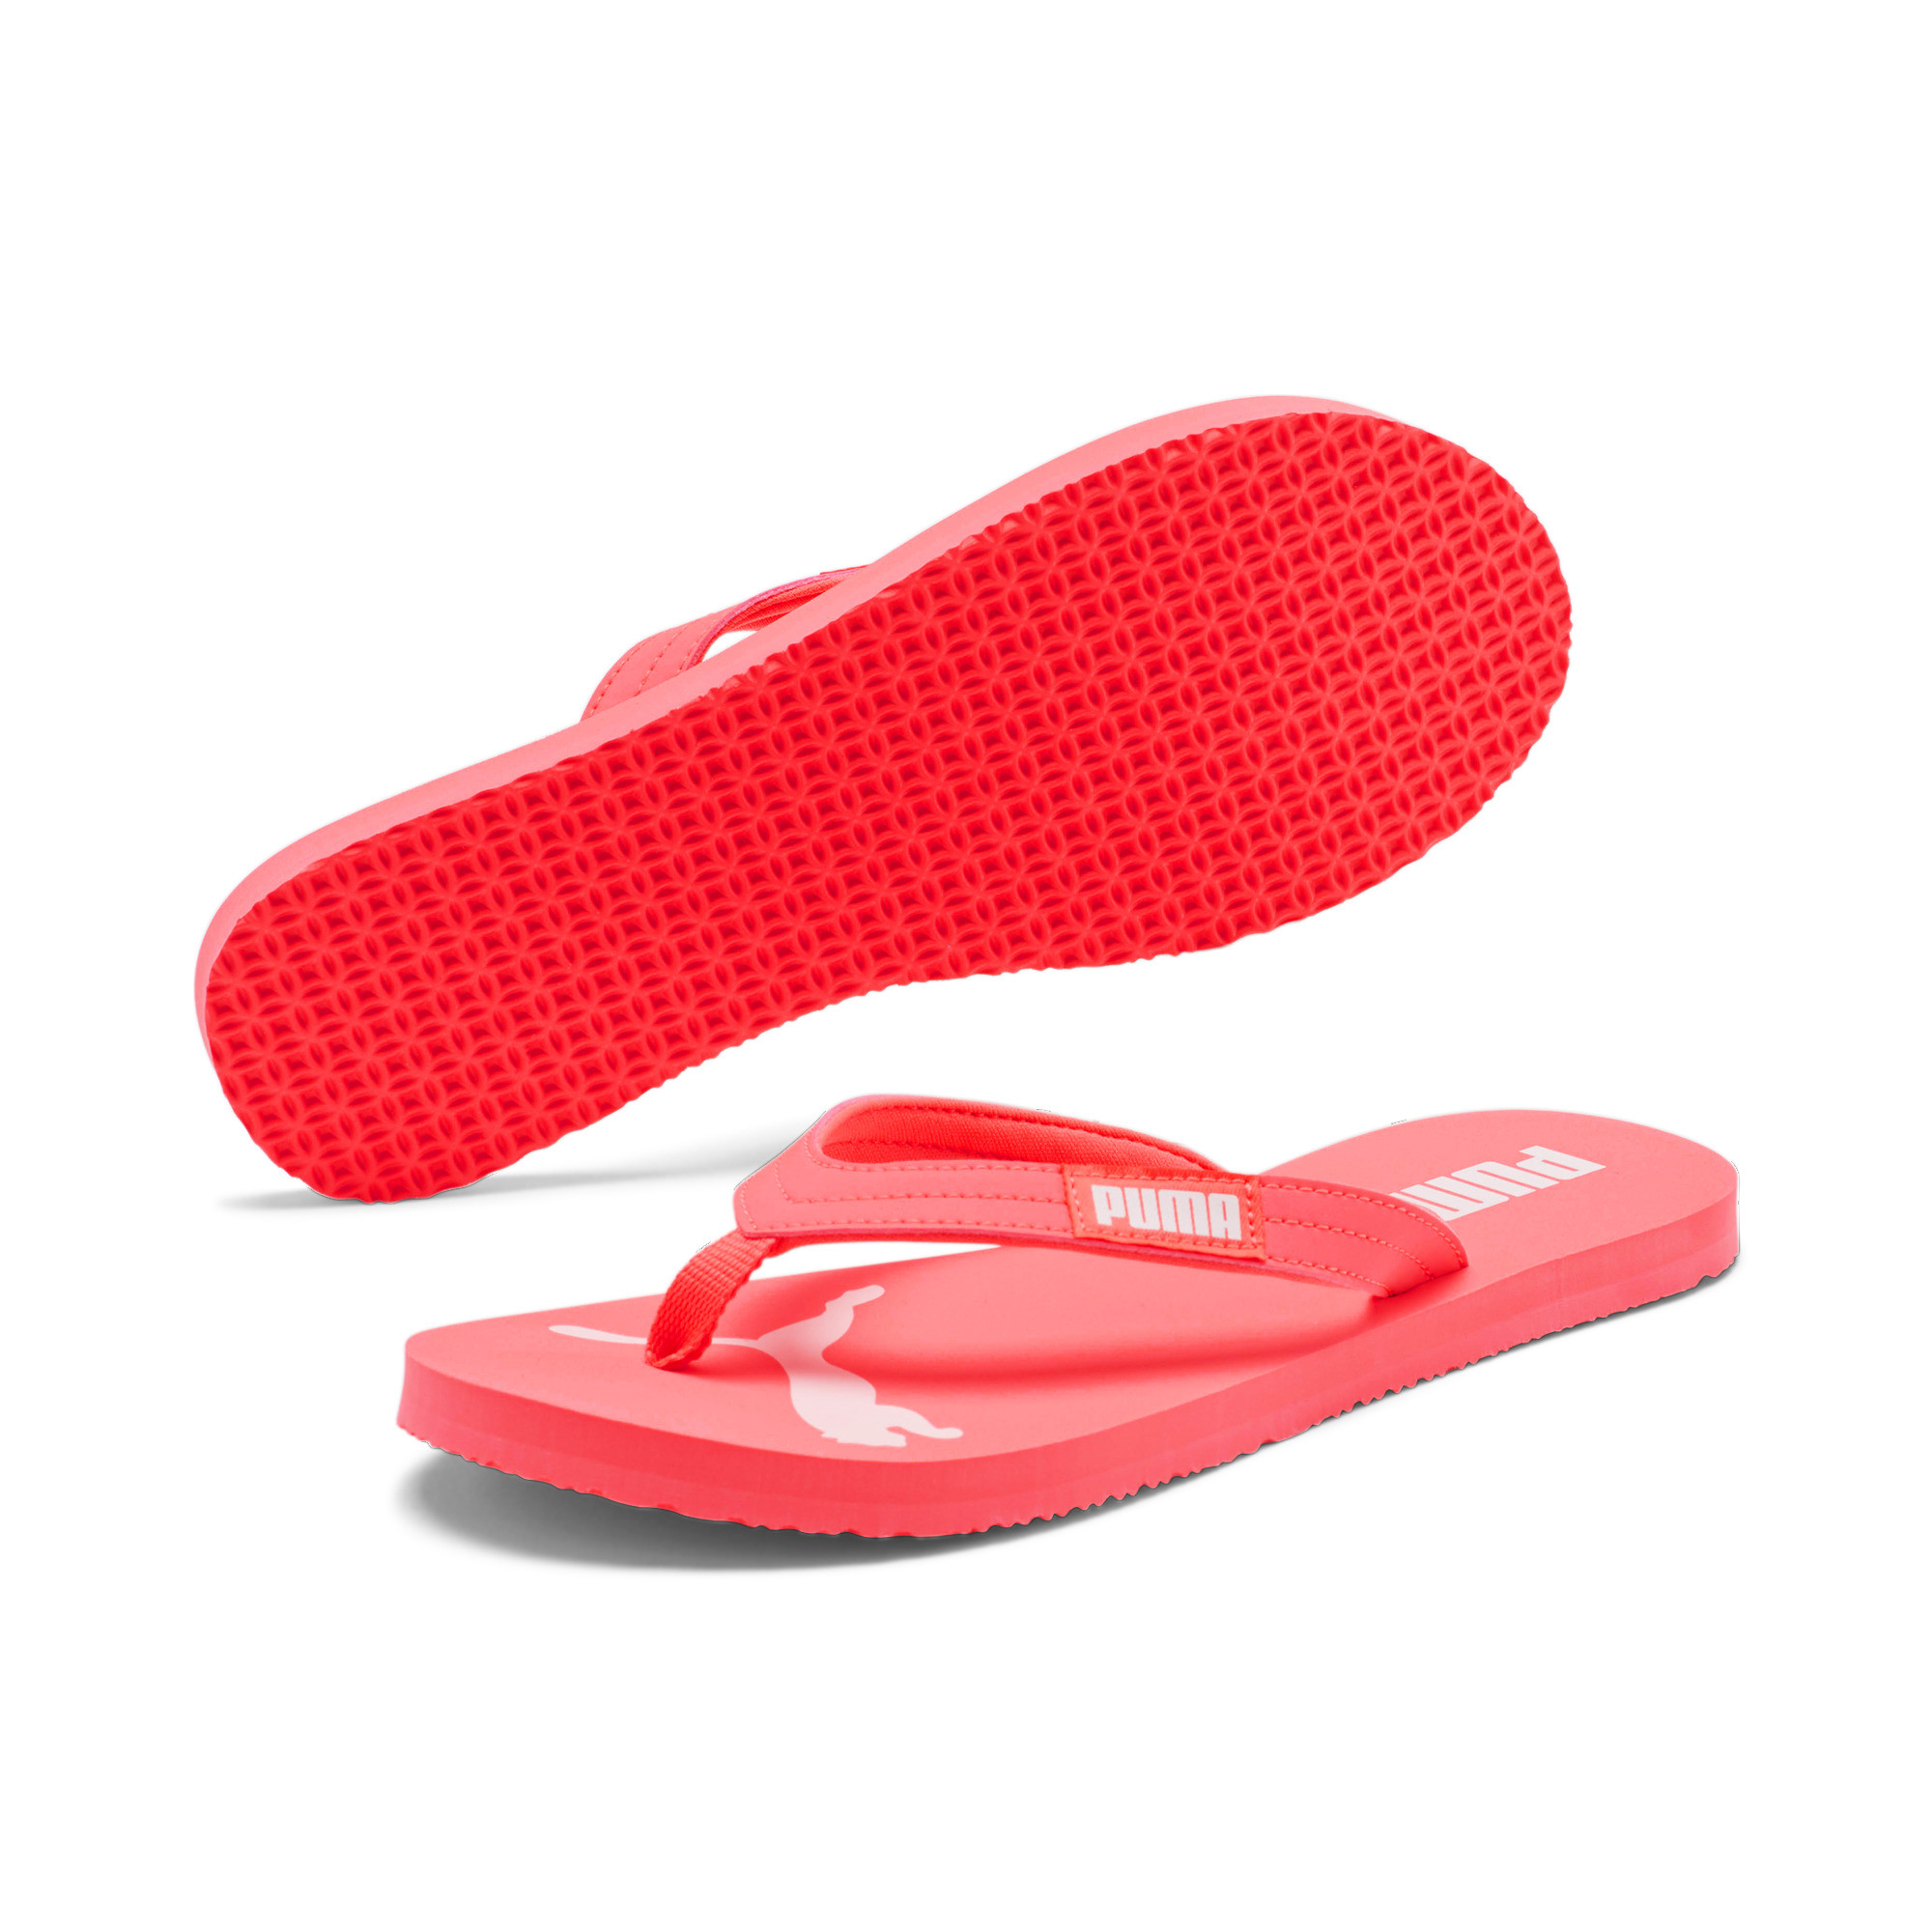 PUMA-Women-039-s-Cozy-Flip-Sandals thumbnail 1